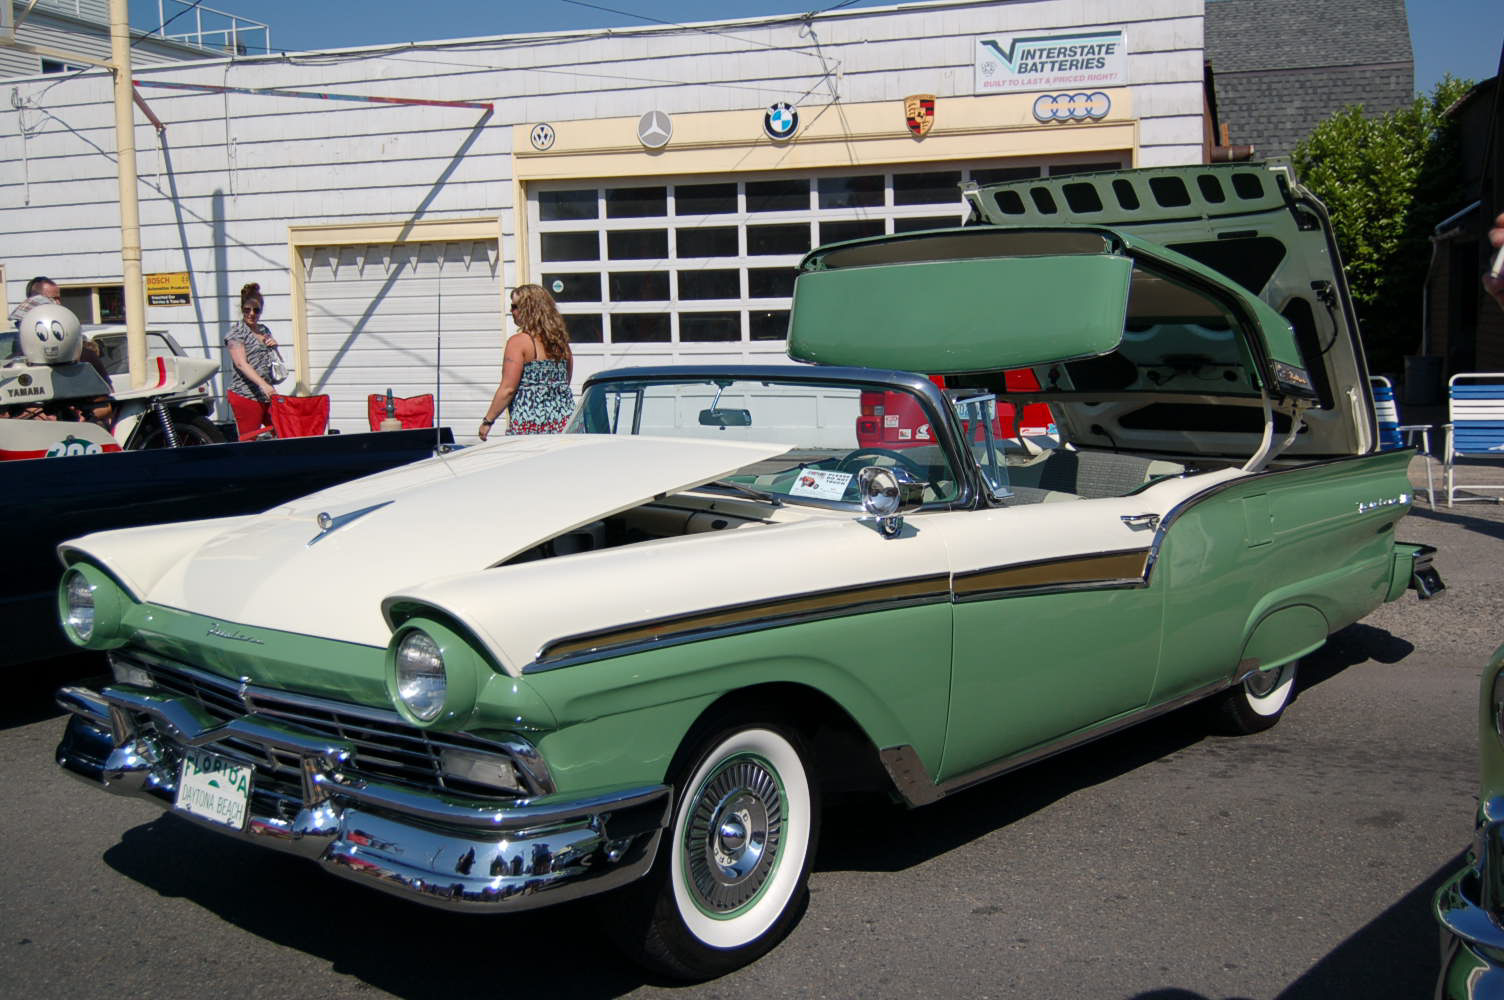 1957 ford fairlane painted original colonial white m0524 and cumberland green m0755